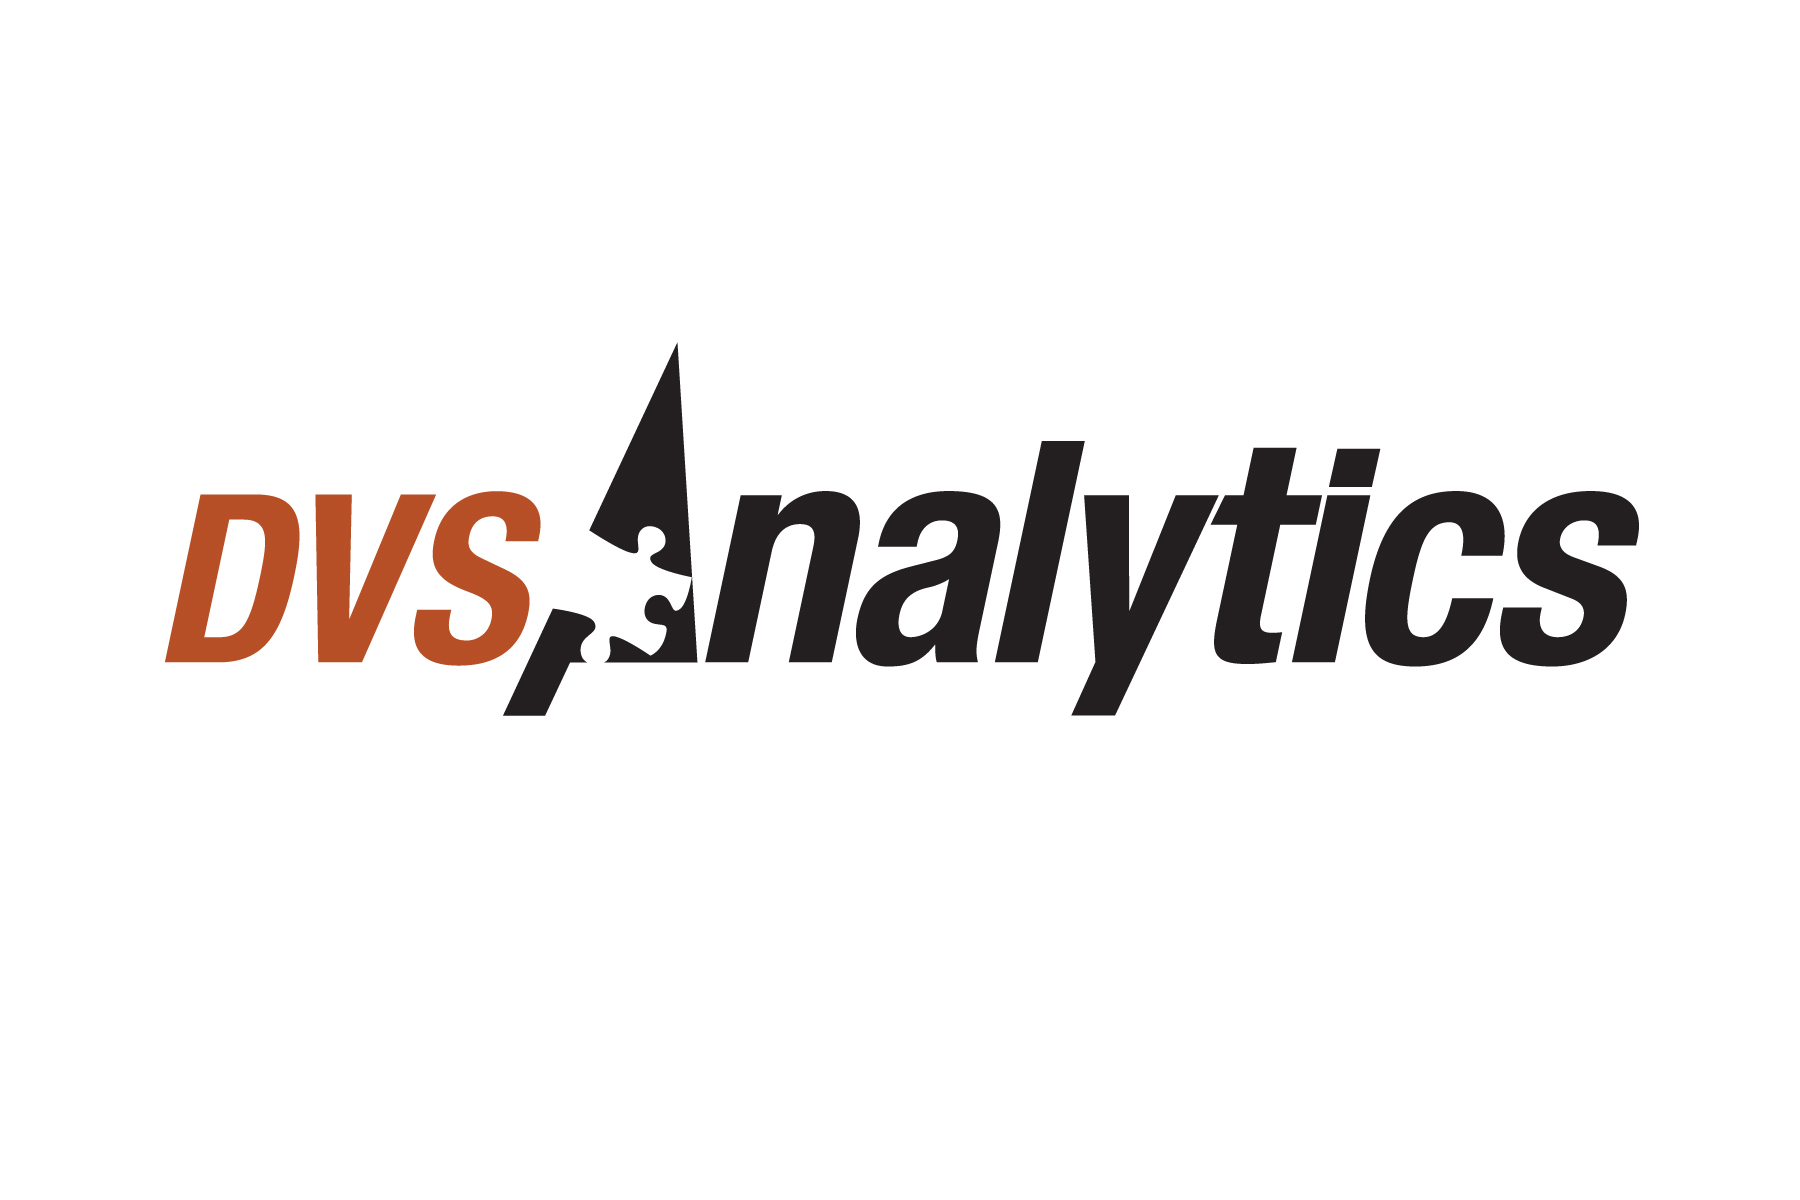 DVS Analytics